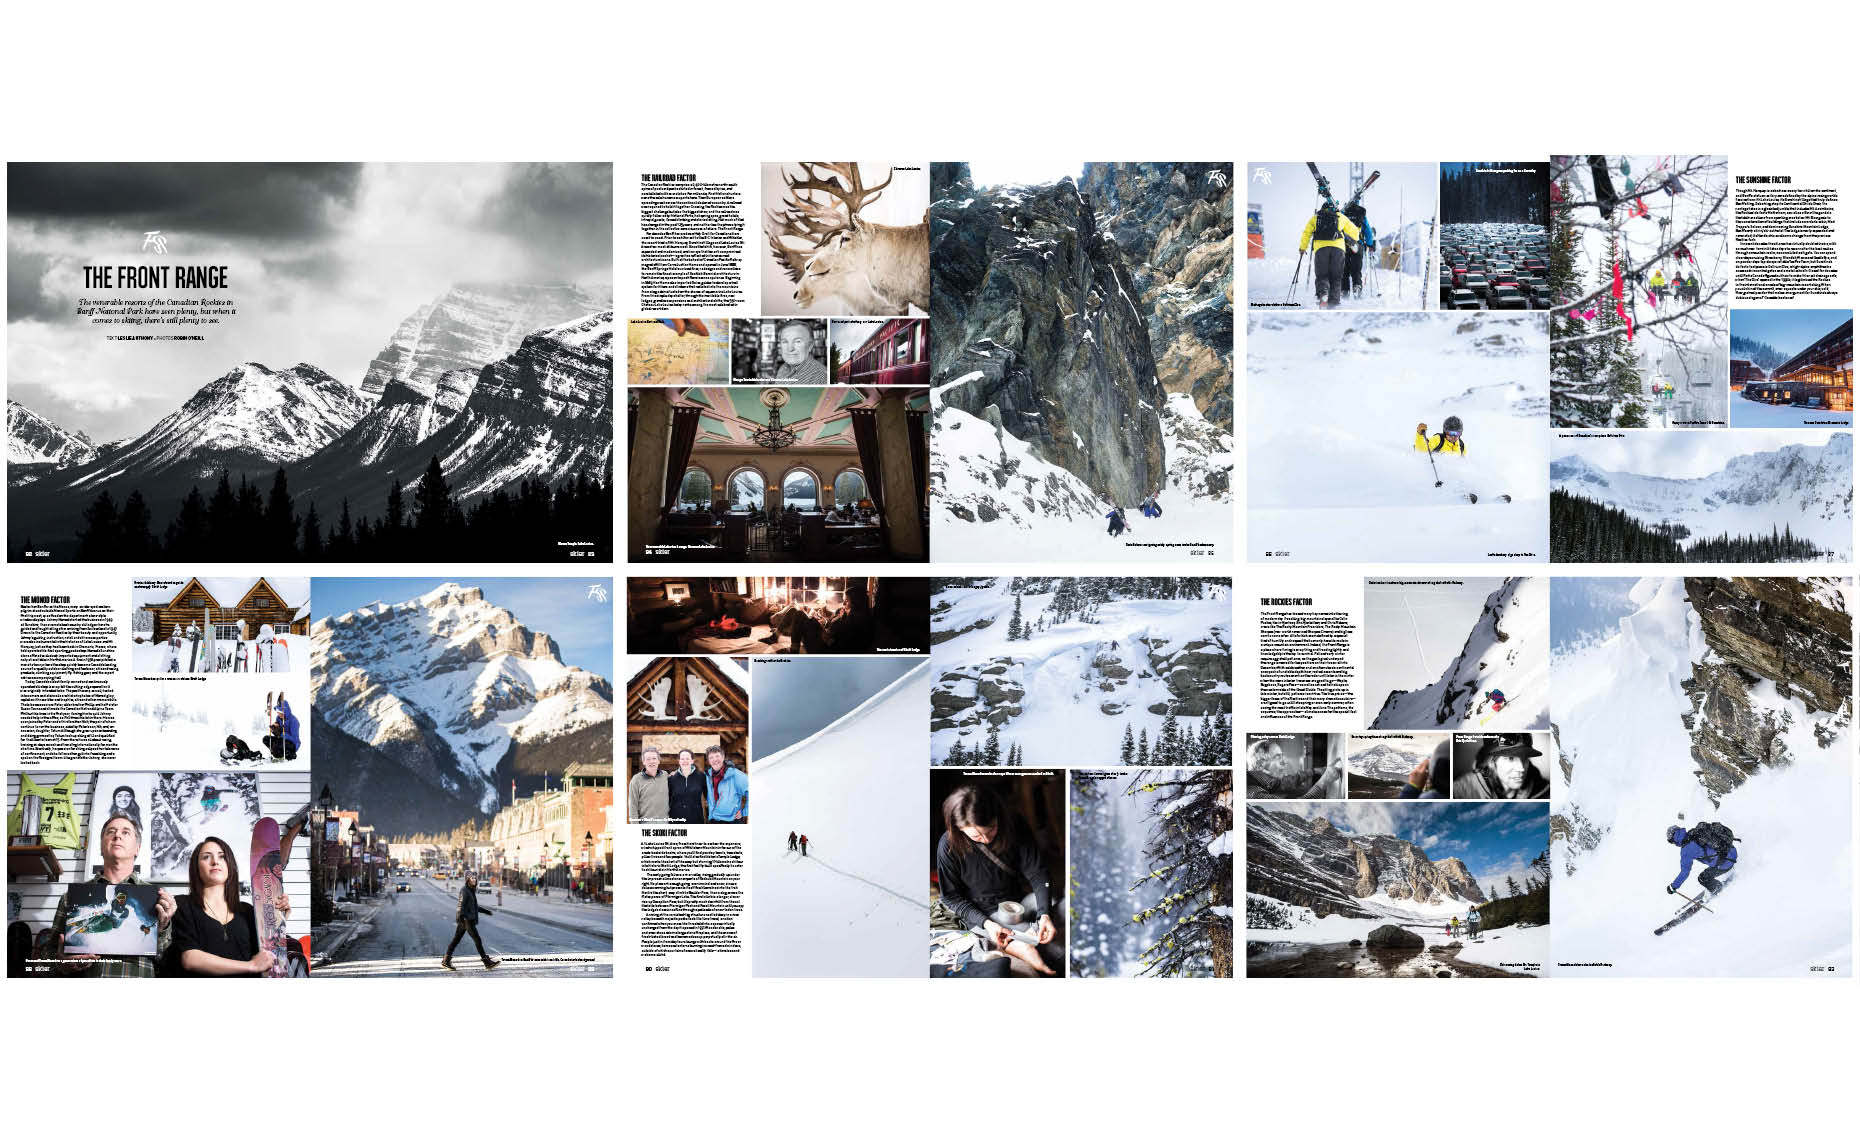 Feature story in front range mountains by ski photographer